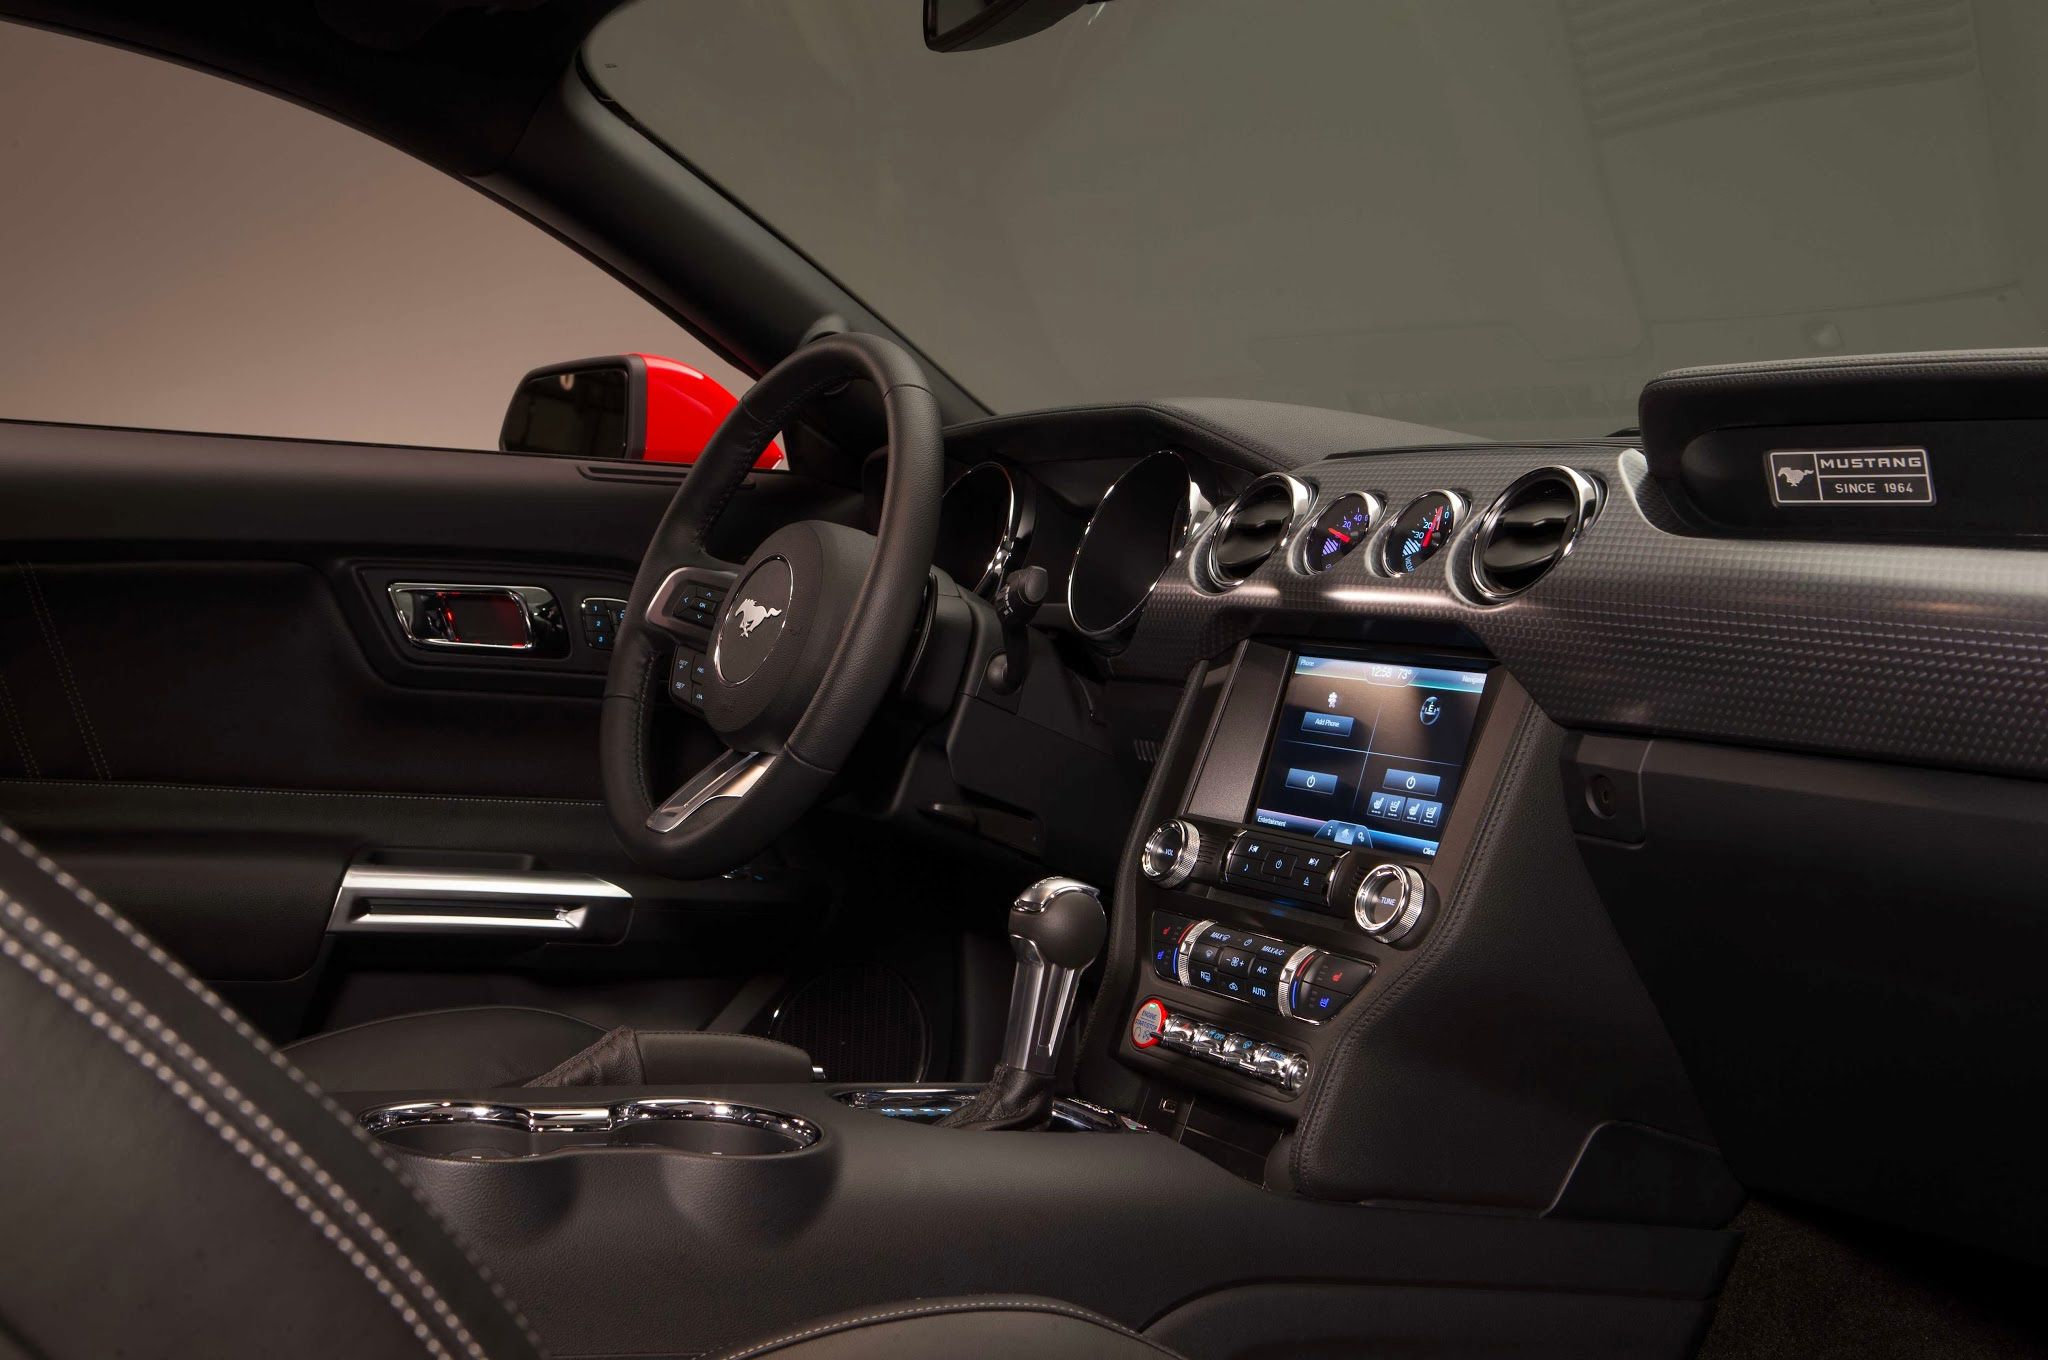 2015 ford mustang 50 red interior from passenger side - Ford Gt40 2015 Interior